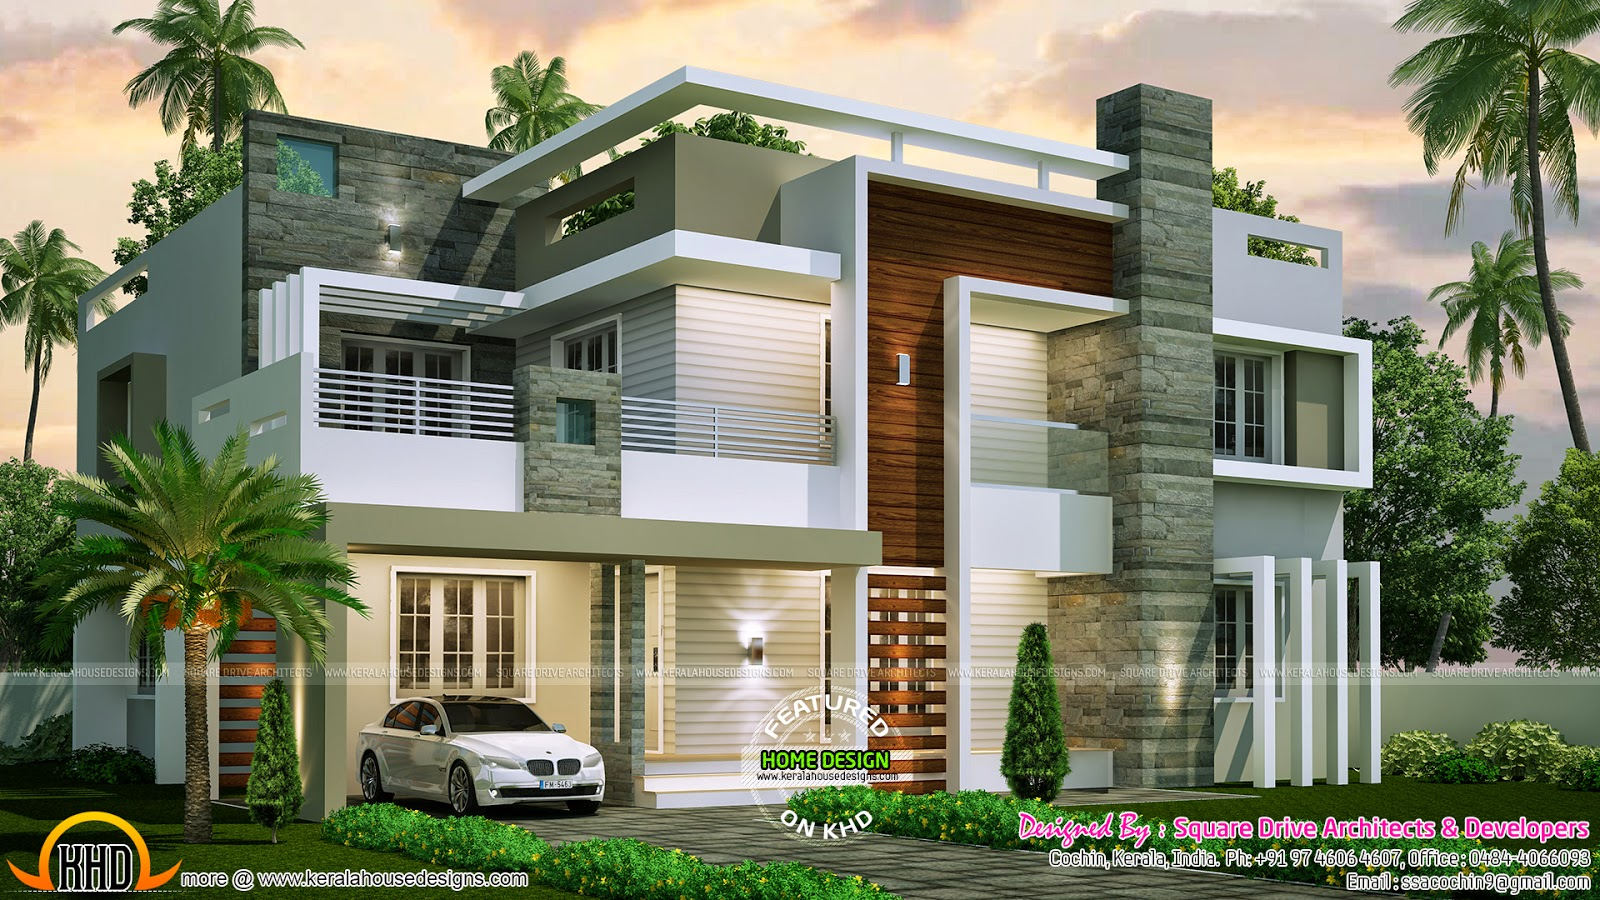 4 bedroom contemporary home design kerala home design Home layout